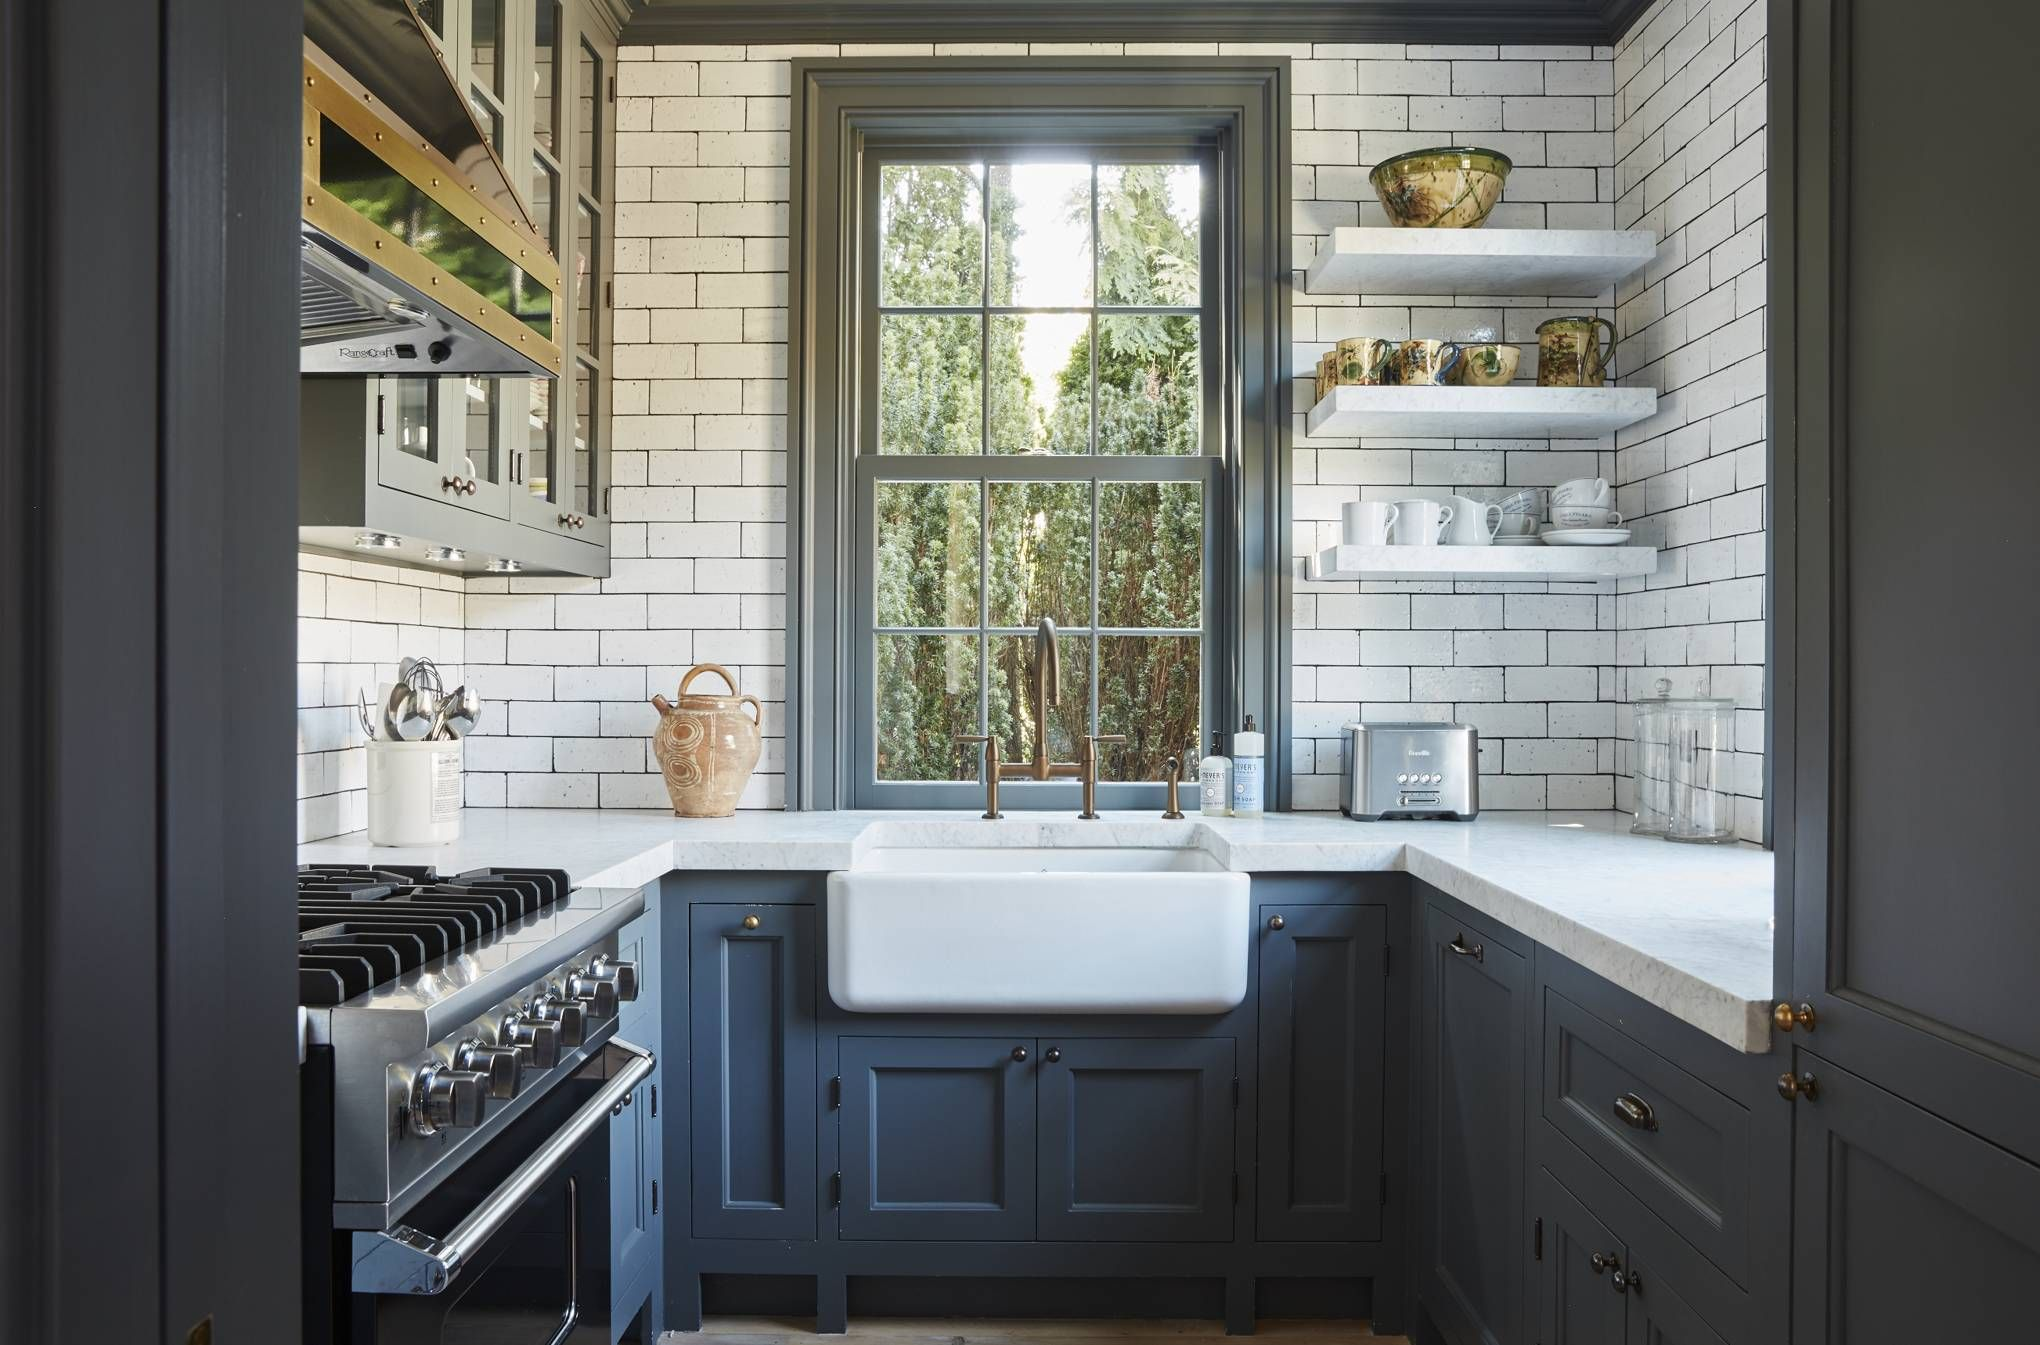 The Same House Features A Small Kitchen With Units Fitted To Be As Ergonomic As Possible Two L Small House Renovation Interior Design Kitchen Bungalow Kitchen Kitchen design small room